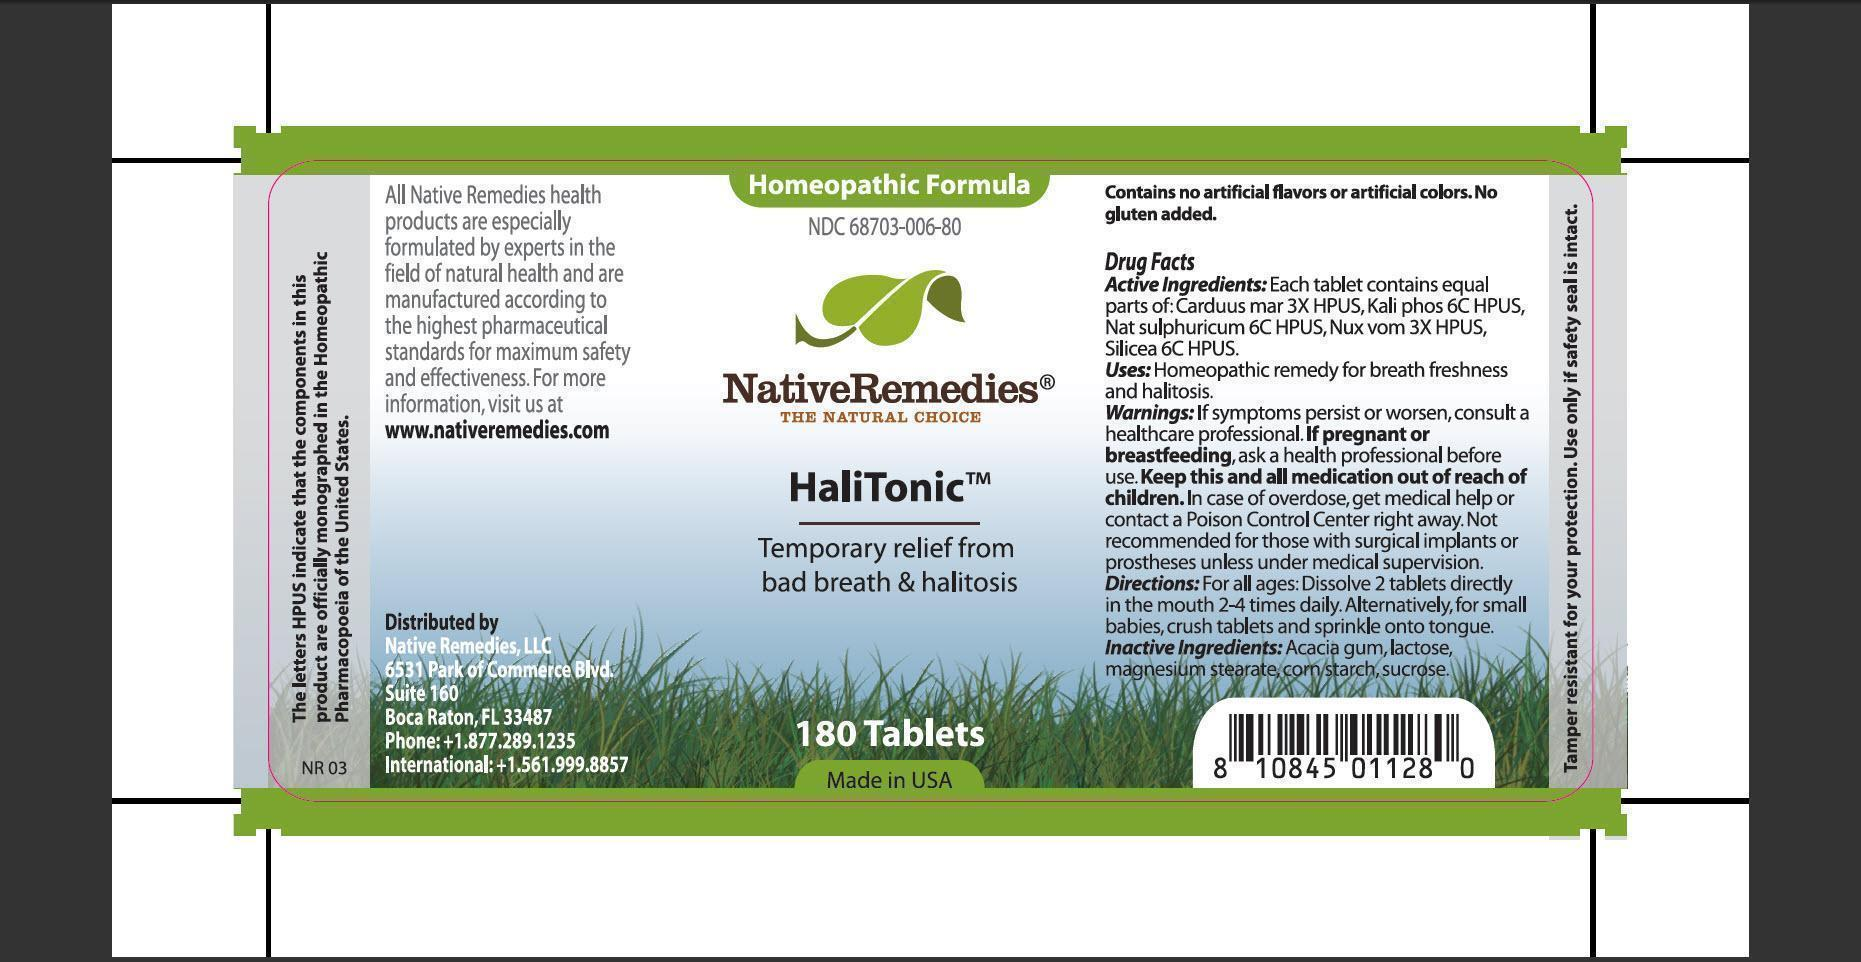 Halitonic (Carduus Mar, Kali Phos, Nat Sulphuricum, Nux Vom, Silicea, Acacia Gum, Lactose, Magnesium Stearate, Corn Starch, Sucrose.) Tablet [Native Remedies Llc]